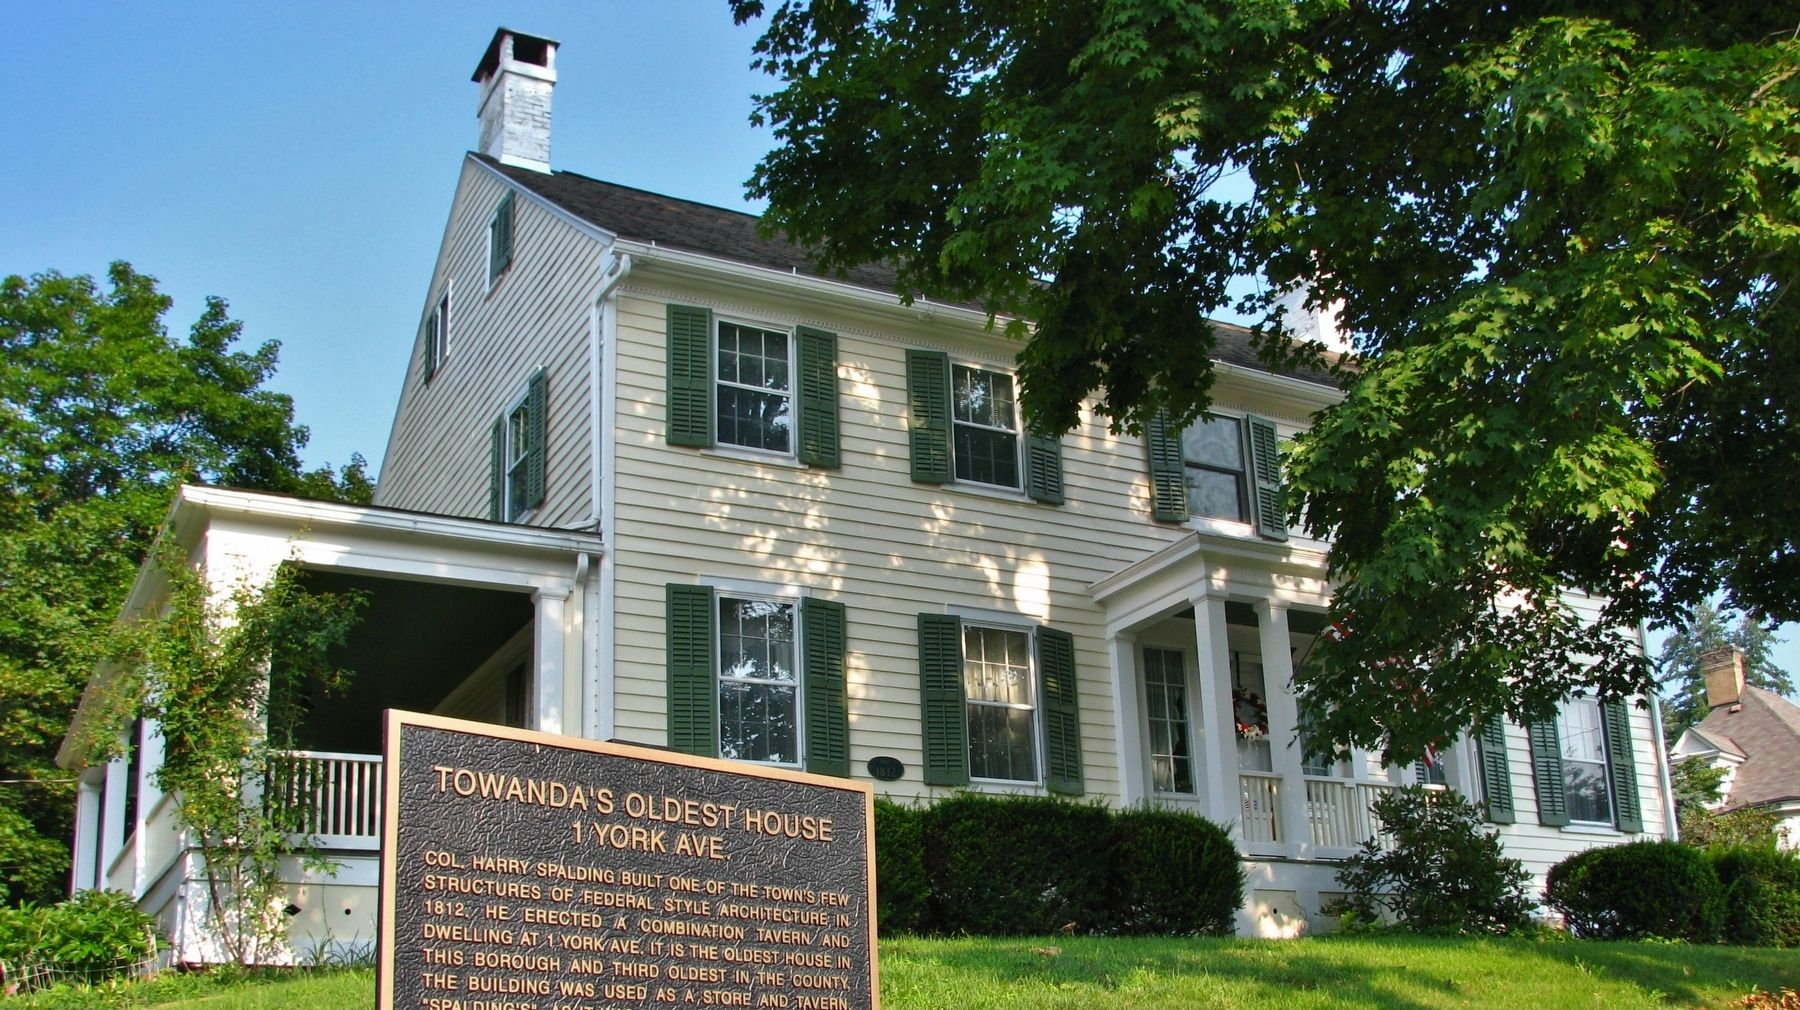 Towanda's Oldest House image. Click for full size.